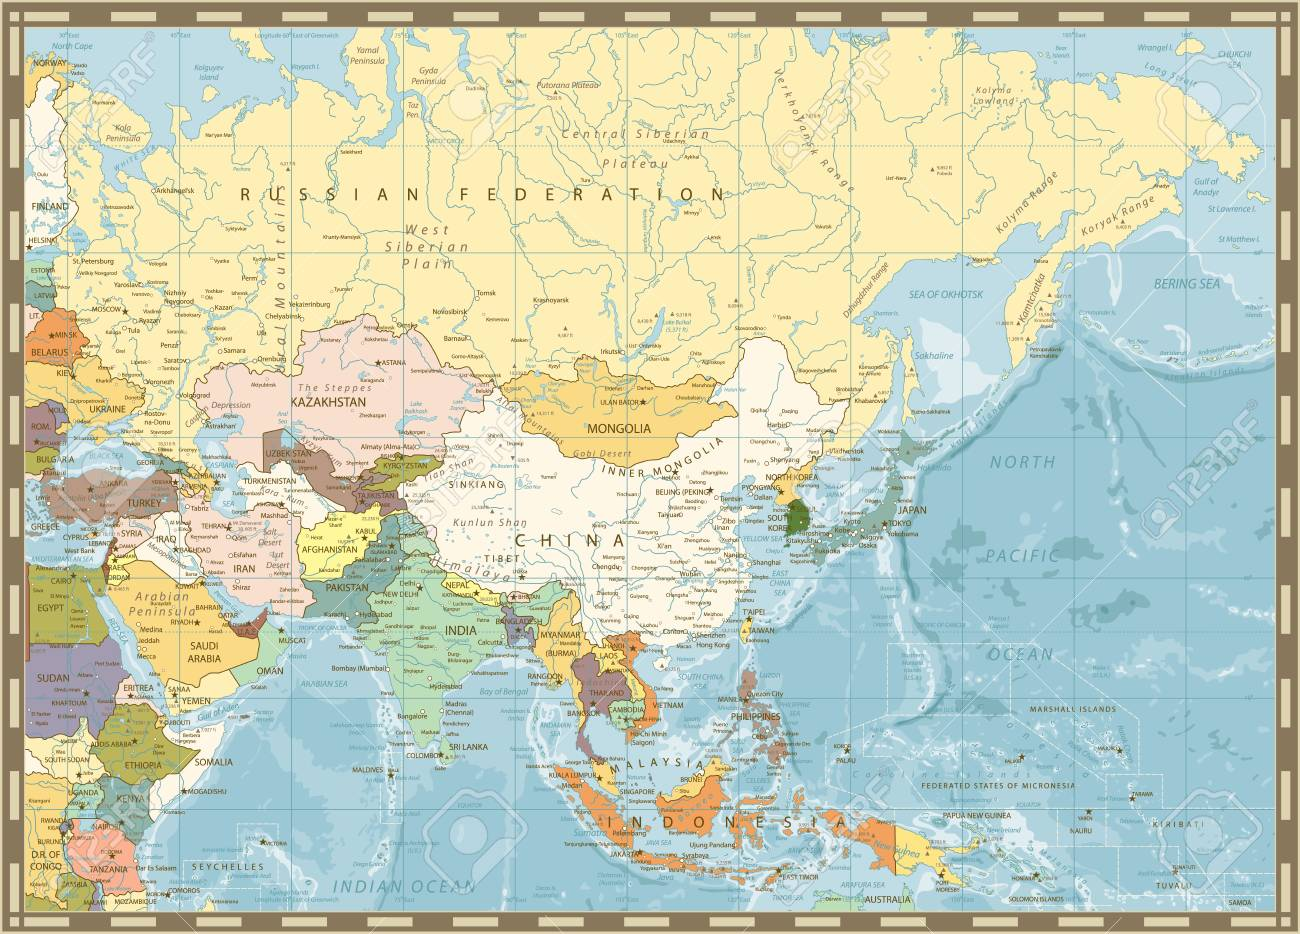 Map Of Asia Rivers.Old Retro Map Of Asia And Bathymetry With Rivers Lakes And Elevations